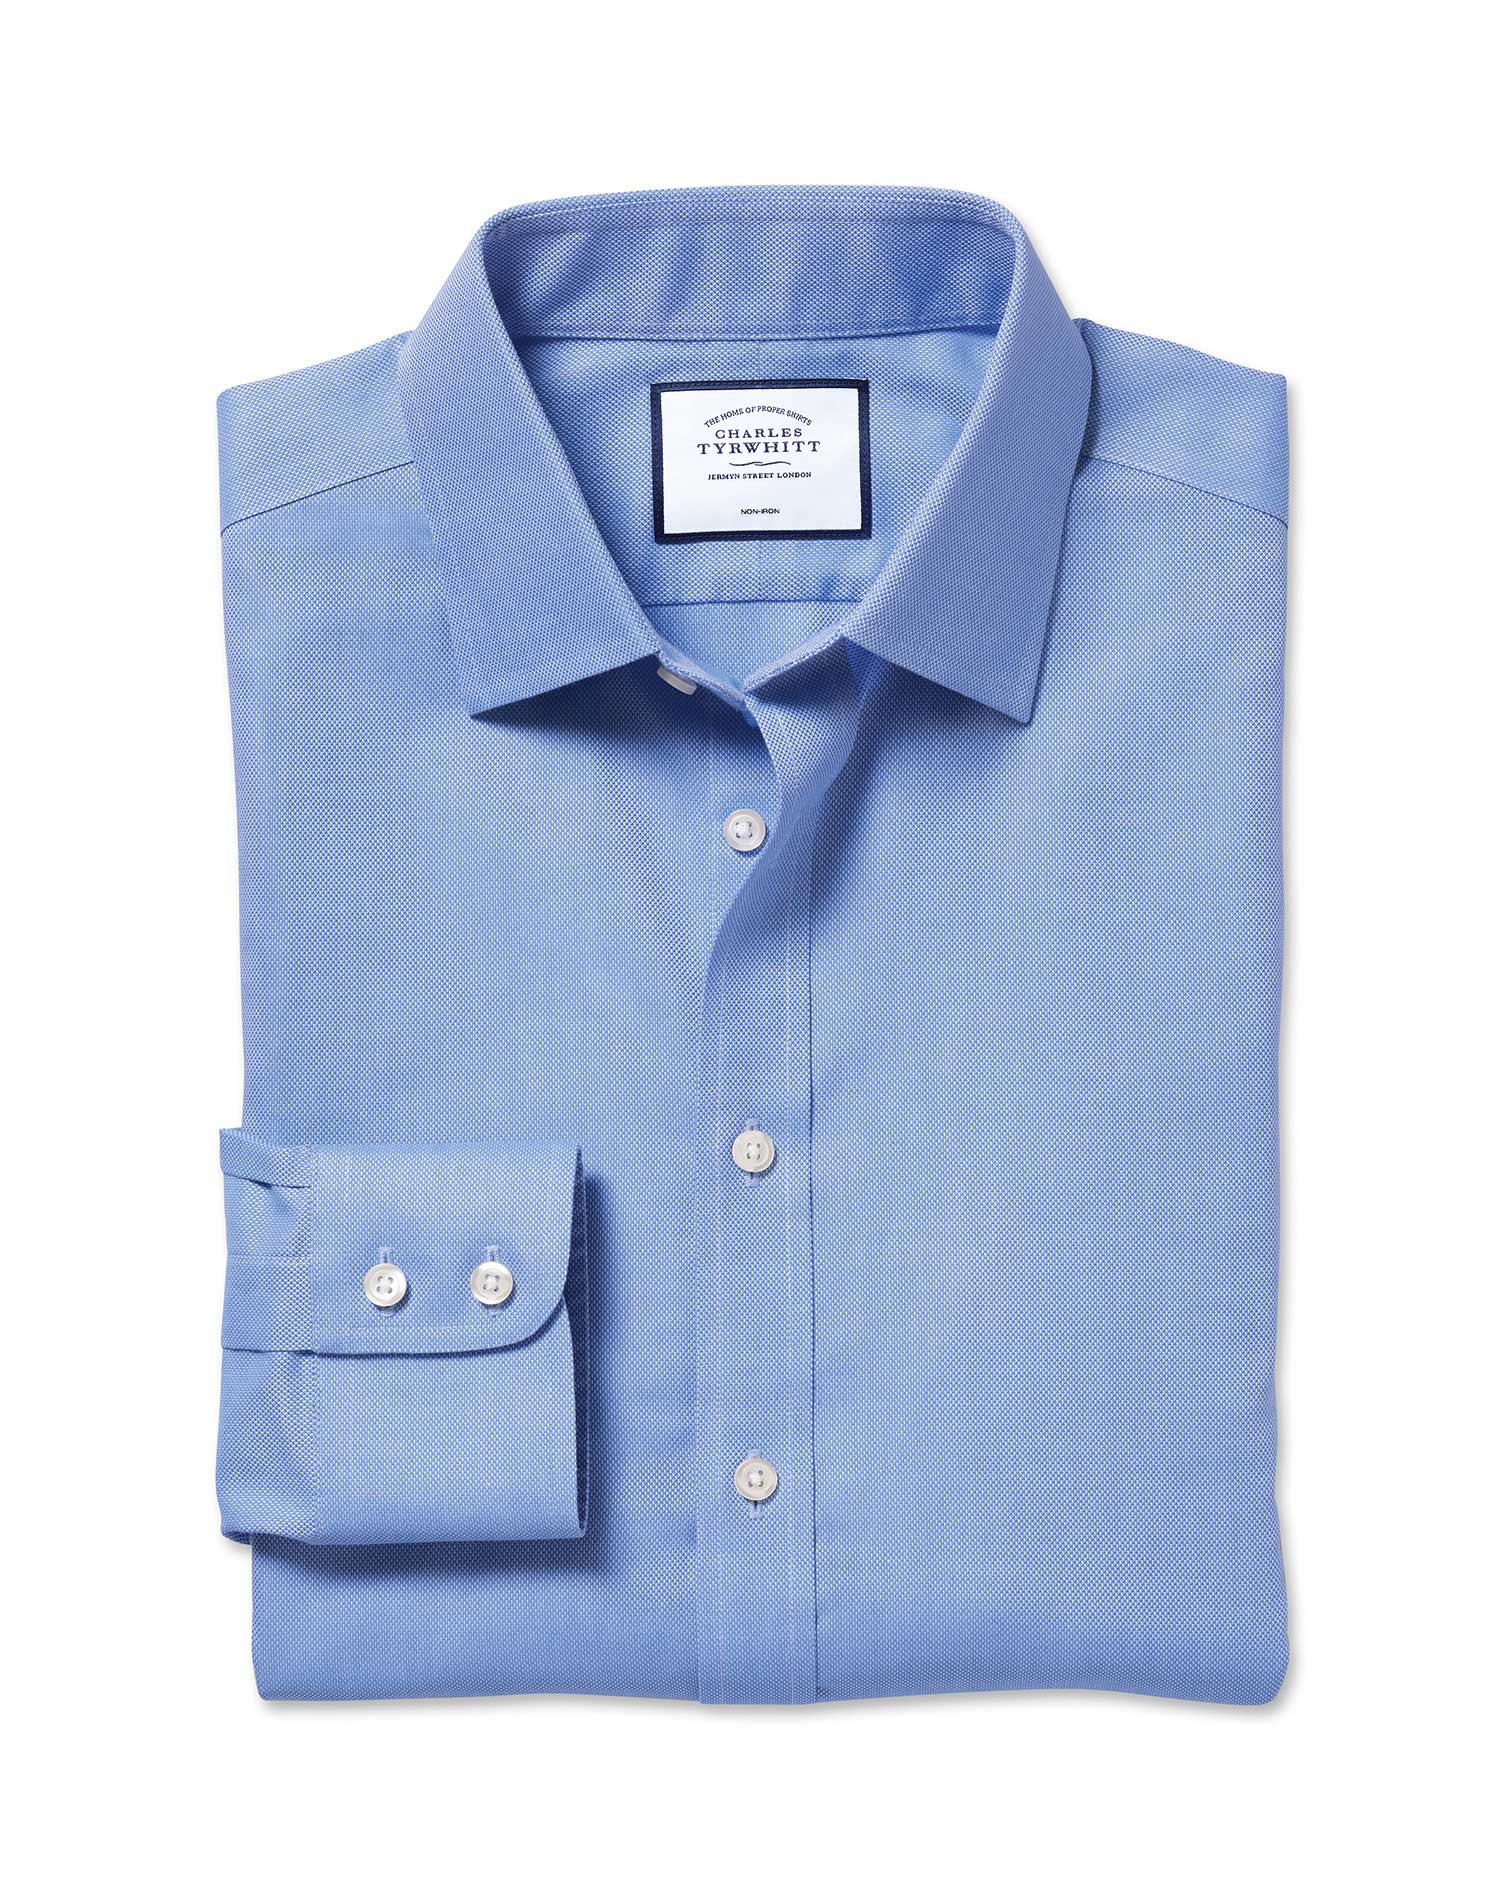 Extra Slim Fit Non-Iron Royal Panama Blue Cotton Formal Shirt Single Cuff Size 17/34 by Charles Tyrw